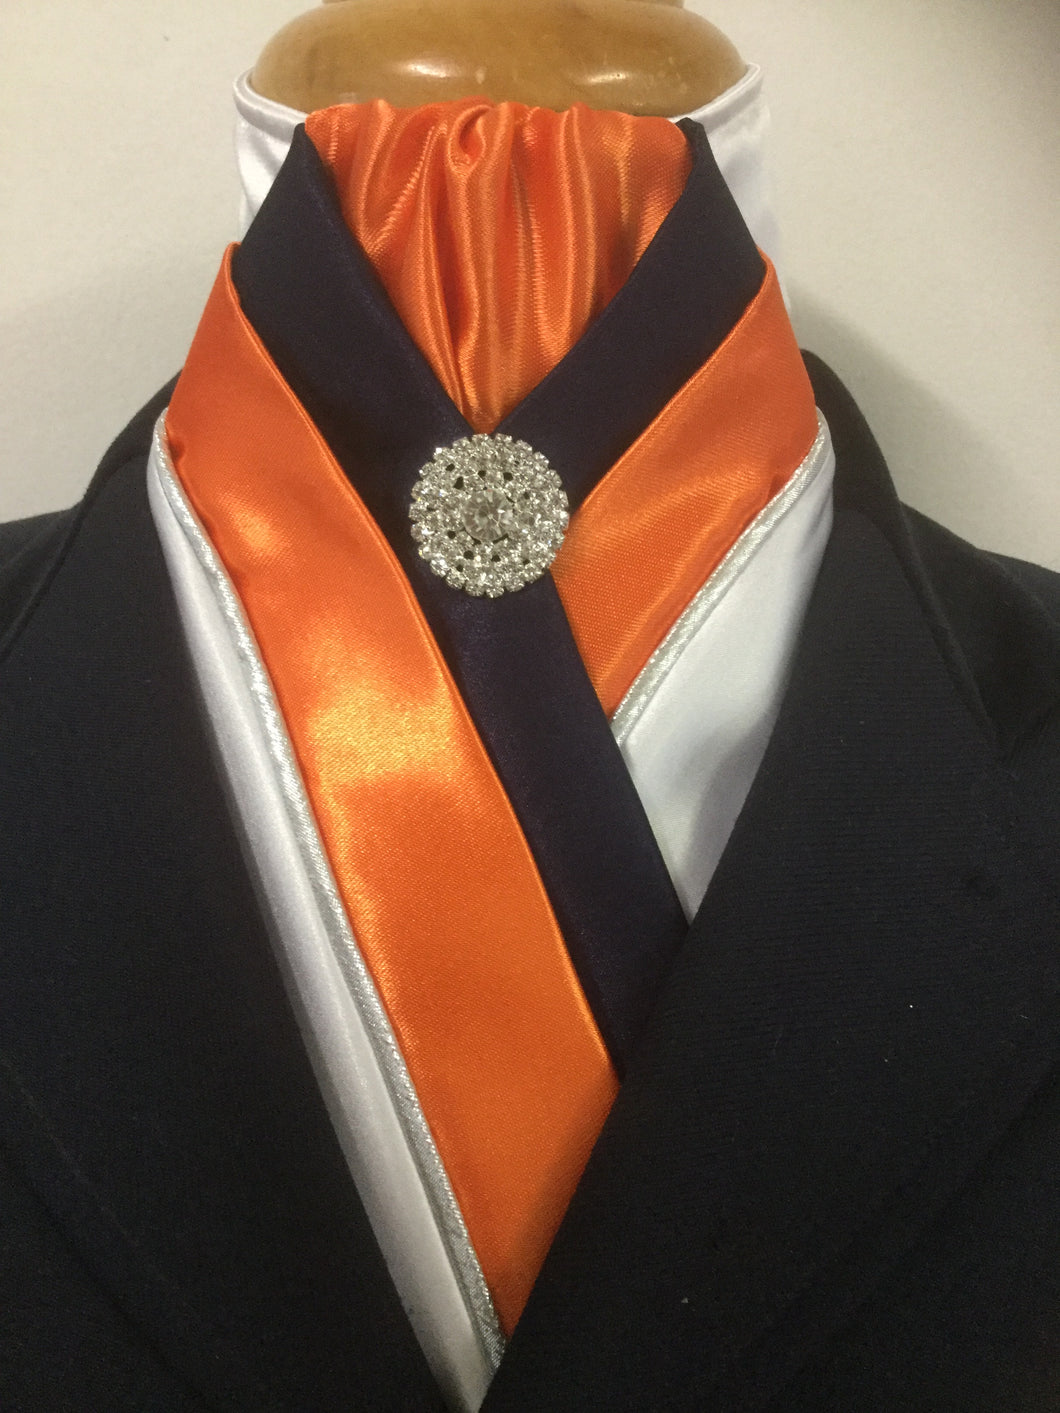 HHD 'The Royal' Equestrian Stock Tie White, Navy Blue & Orange,Silver Piping